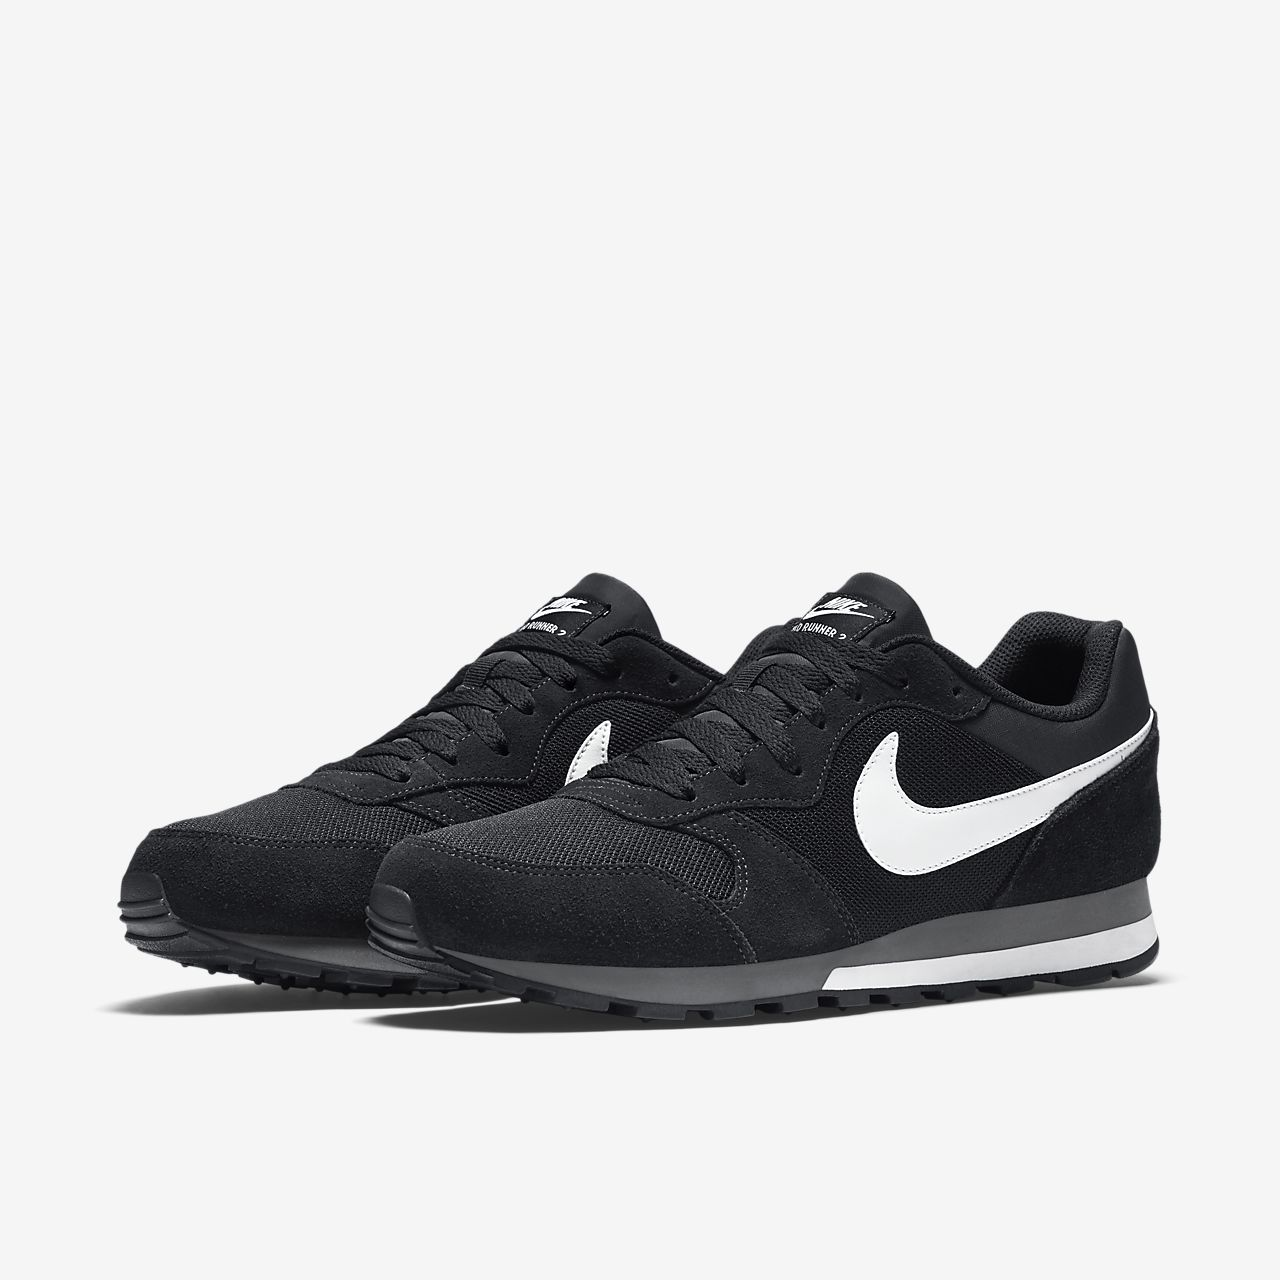 sports shoes 9a13d 2c2d1 ... Nike MD Runner 2 Herrenschuh